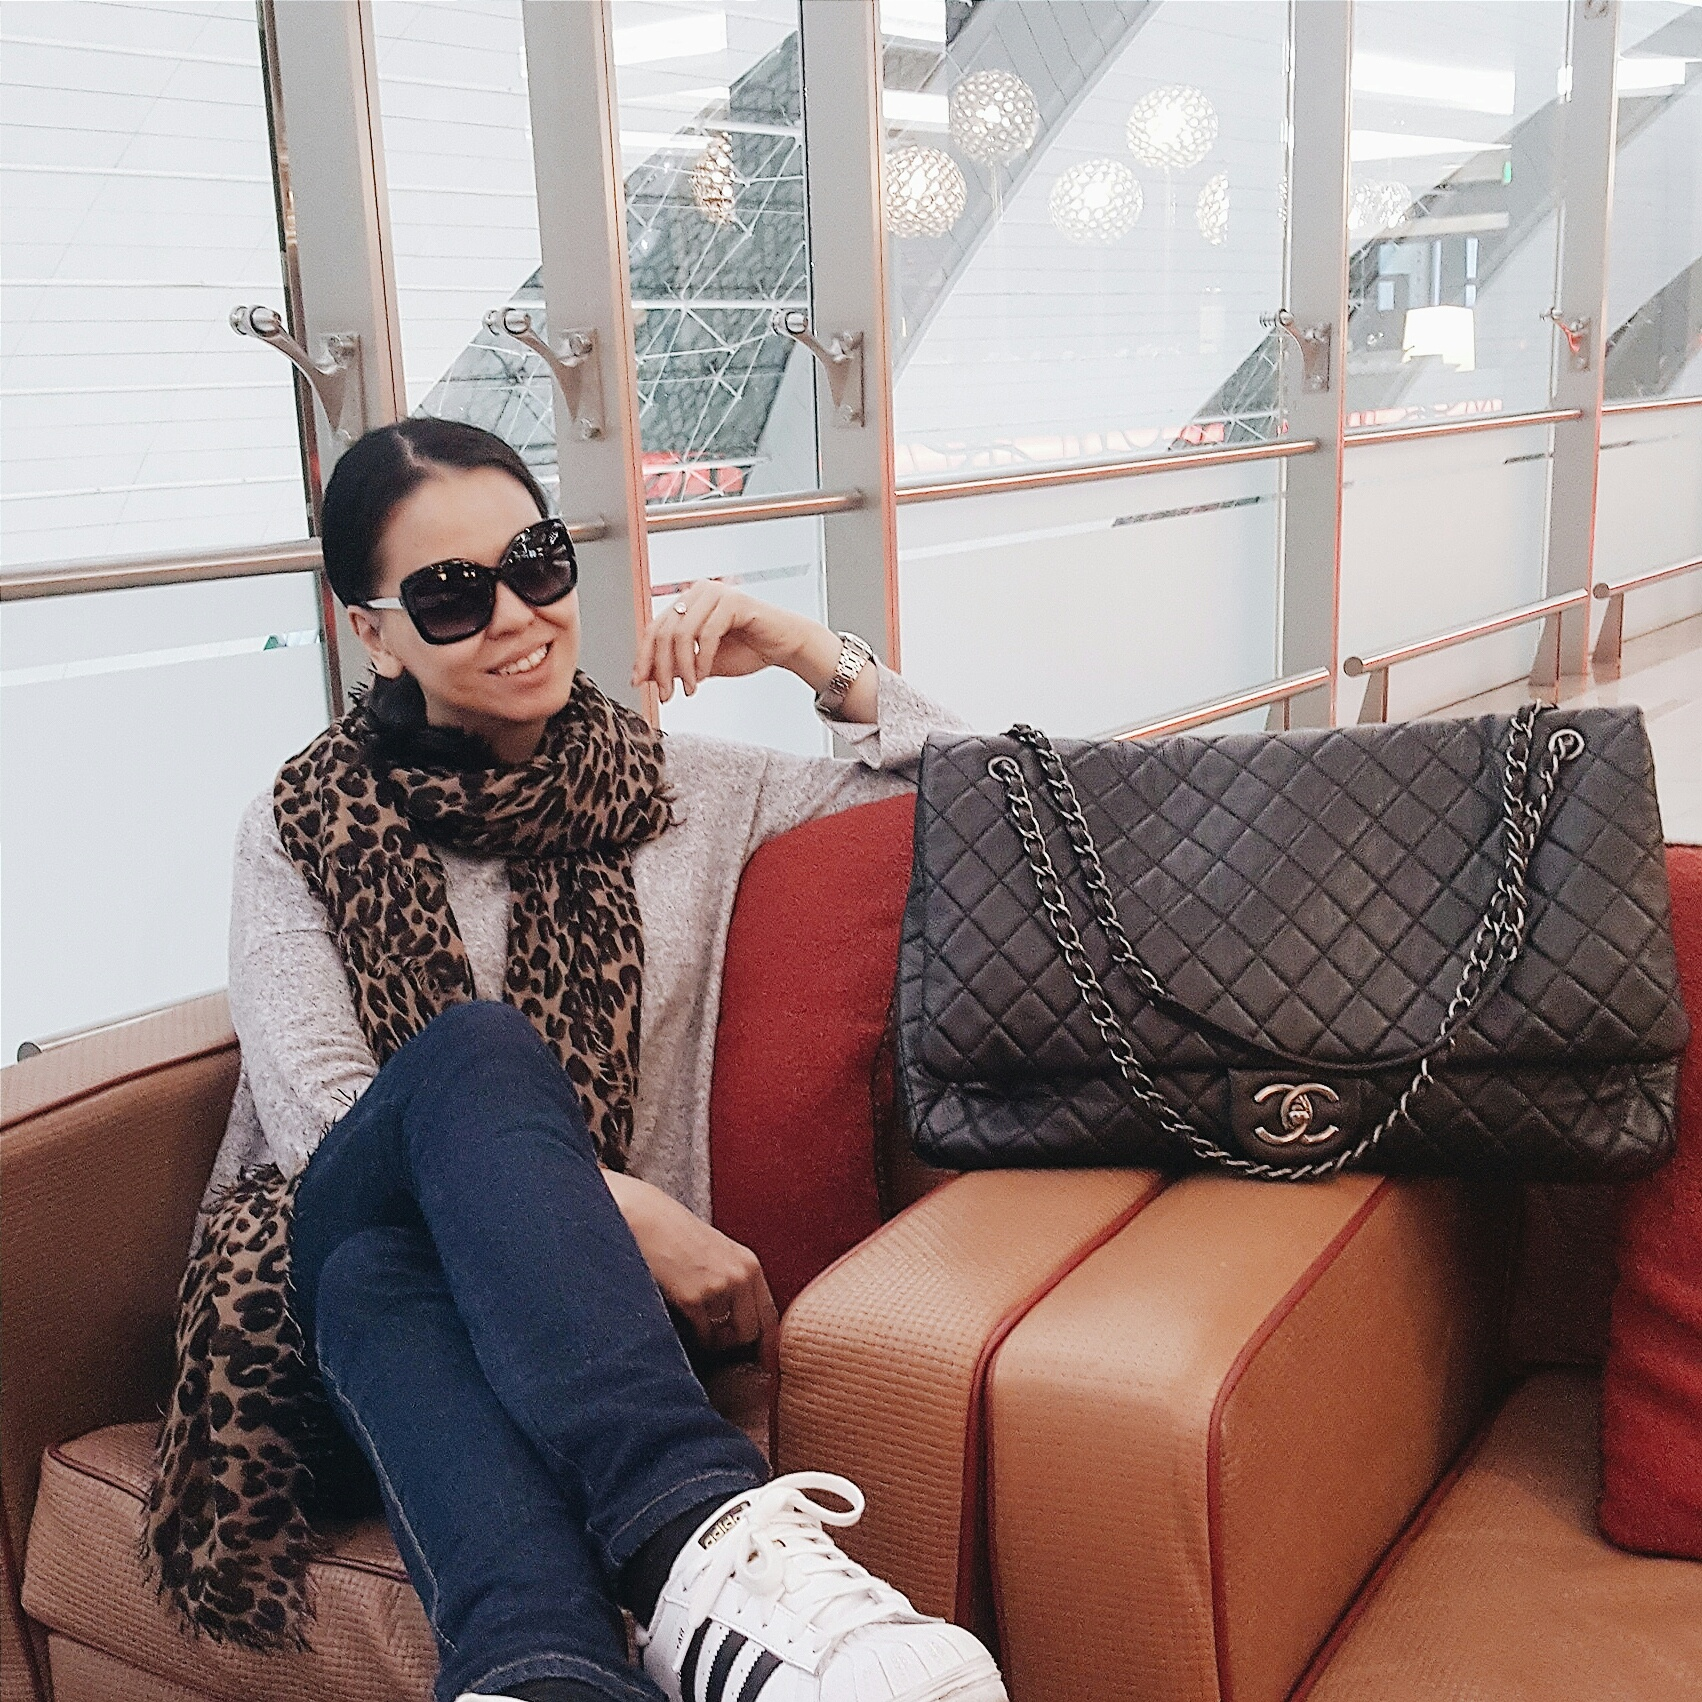 cb0ba58bcac7 Flying with the Chanel XXL Travel Bag – The Bag Hag Diaries